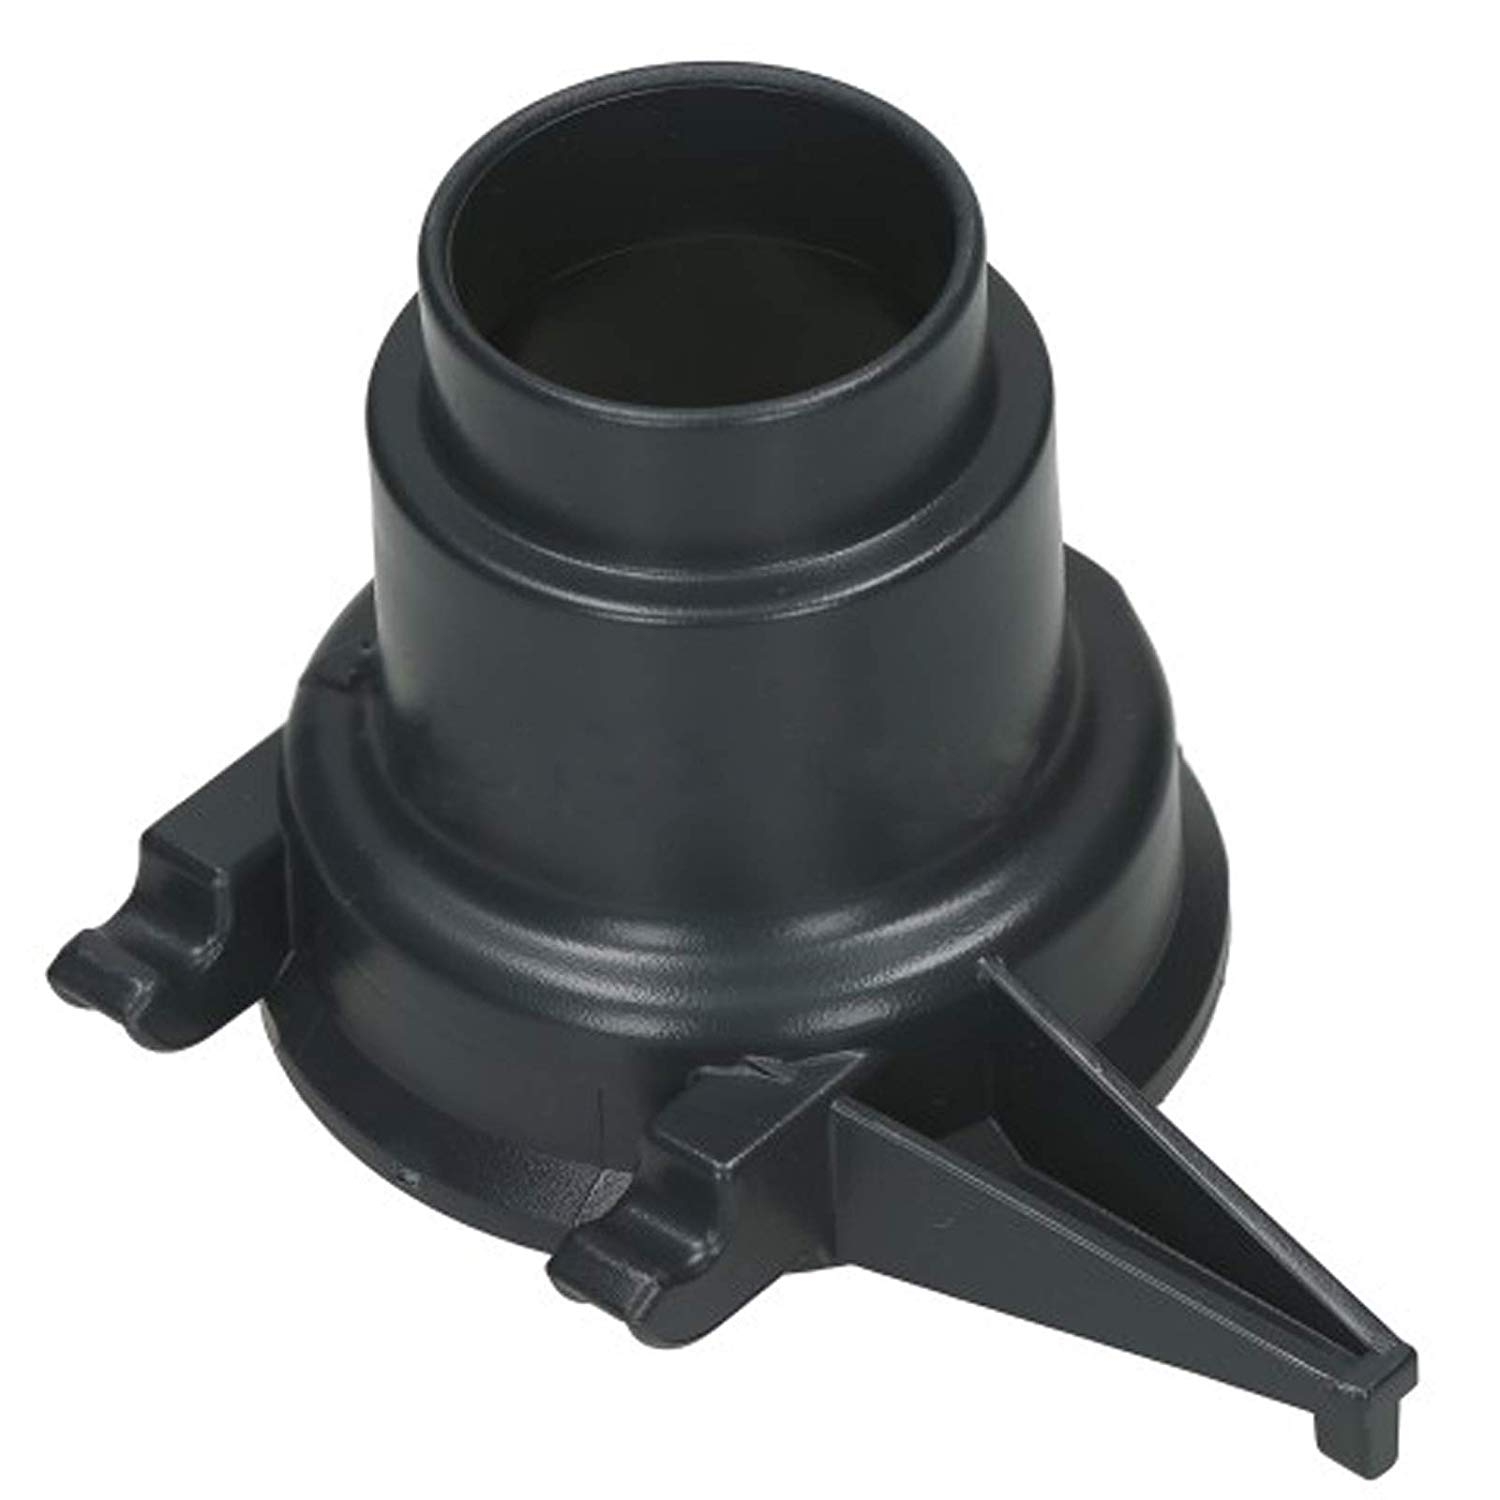 End Hose Suction Blower Connector for Kirby G4 Vacuum CleanerEnd Hose Suction Blower Connector for Kirby G4 Vacuum Cleaner